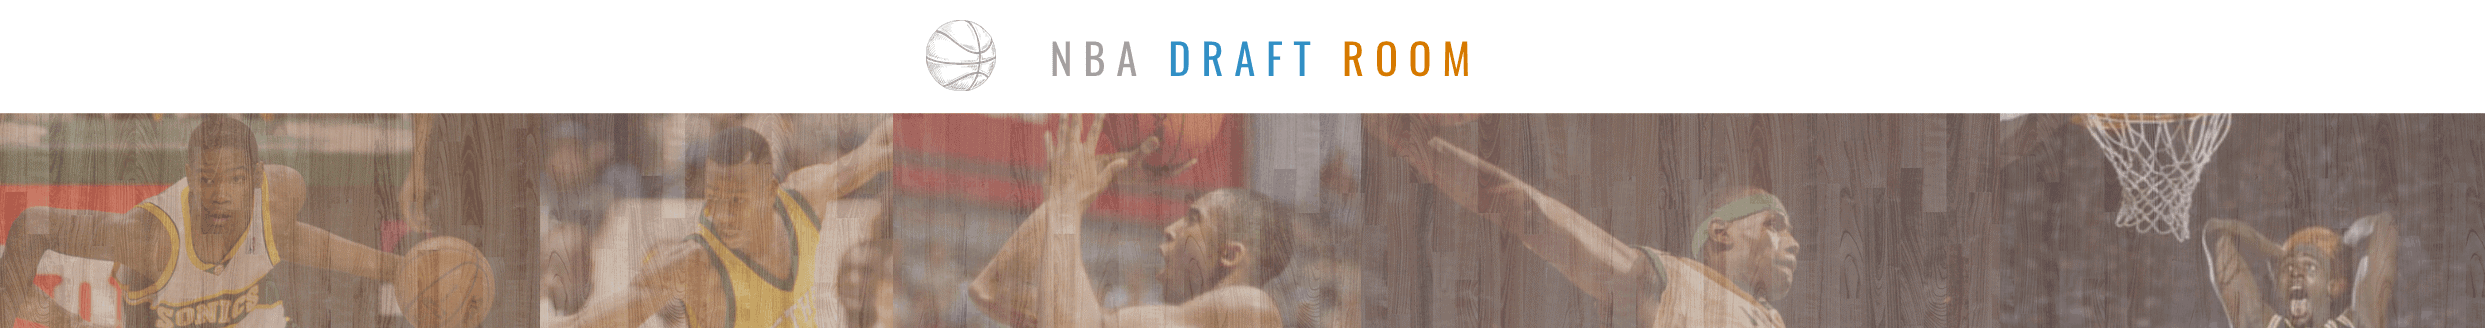 NBA Draft Room